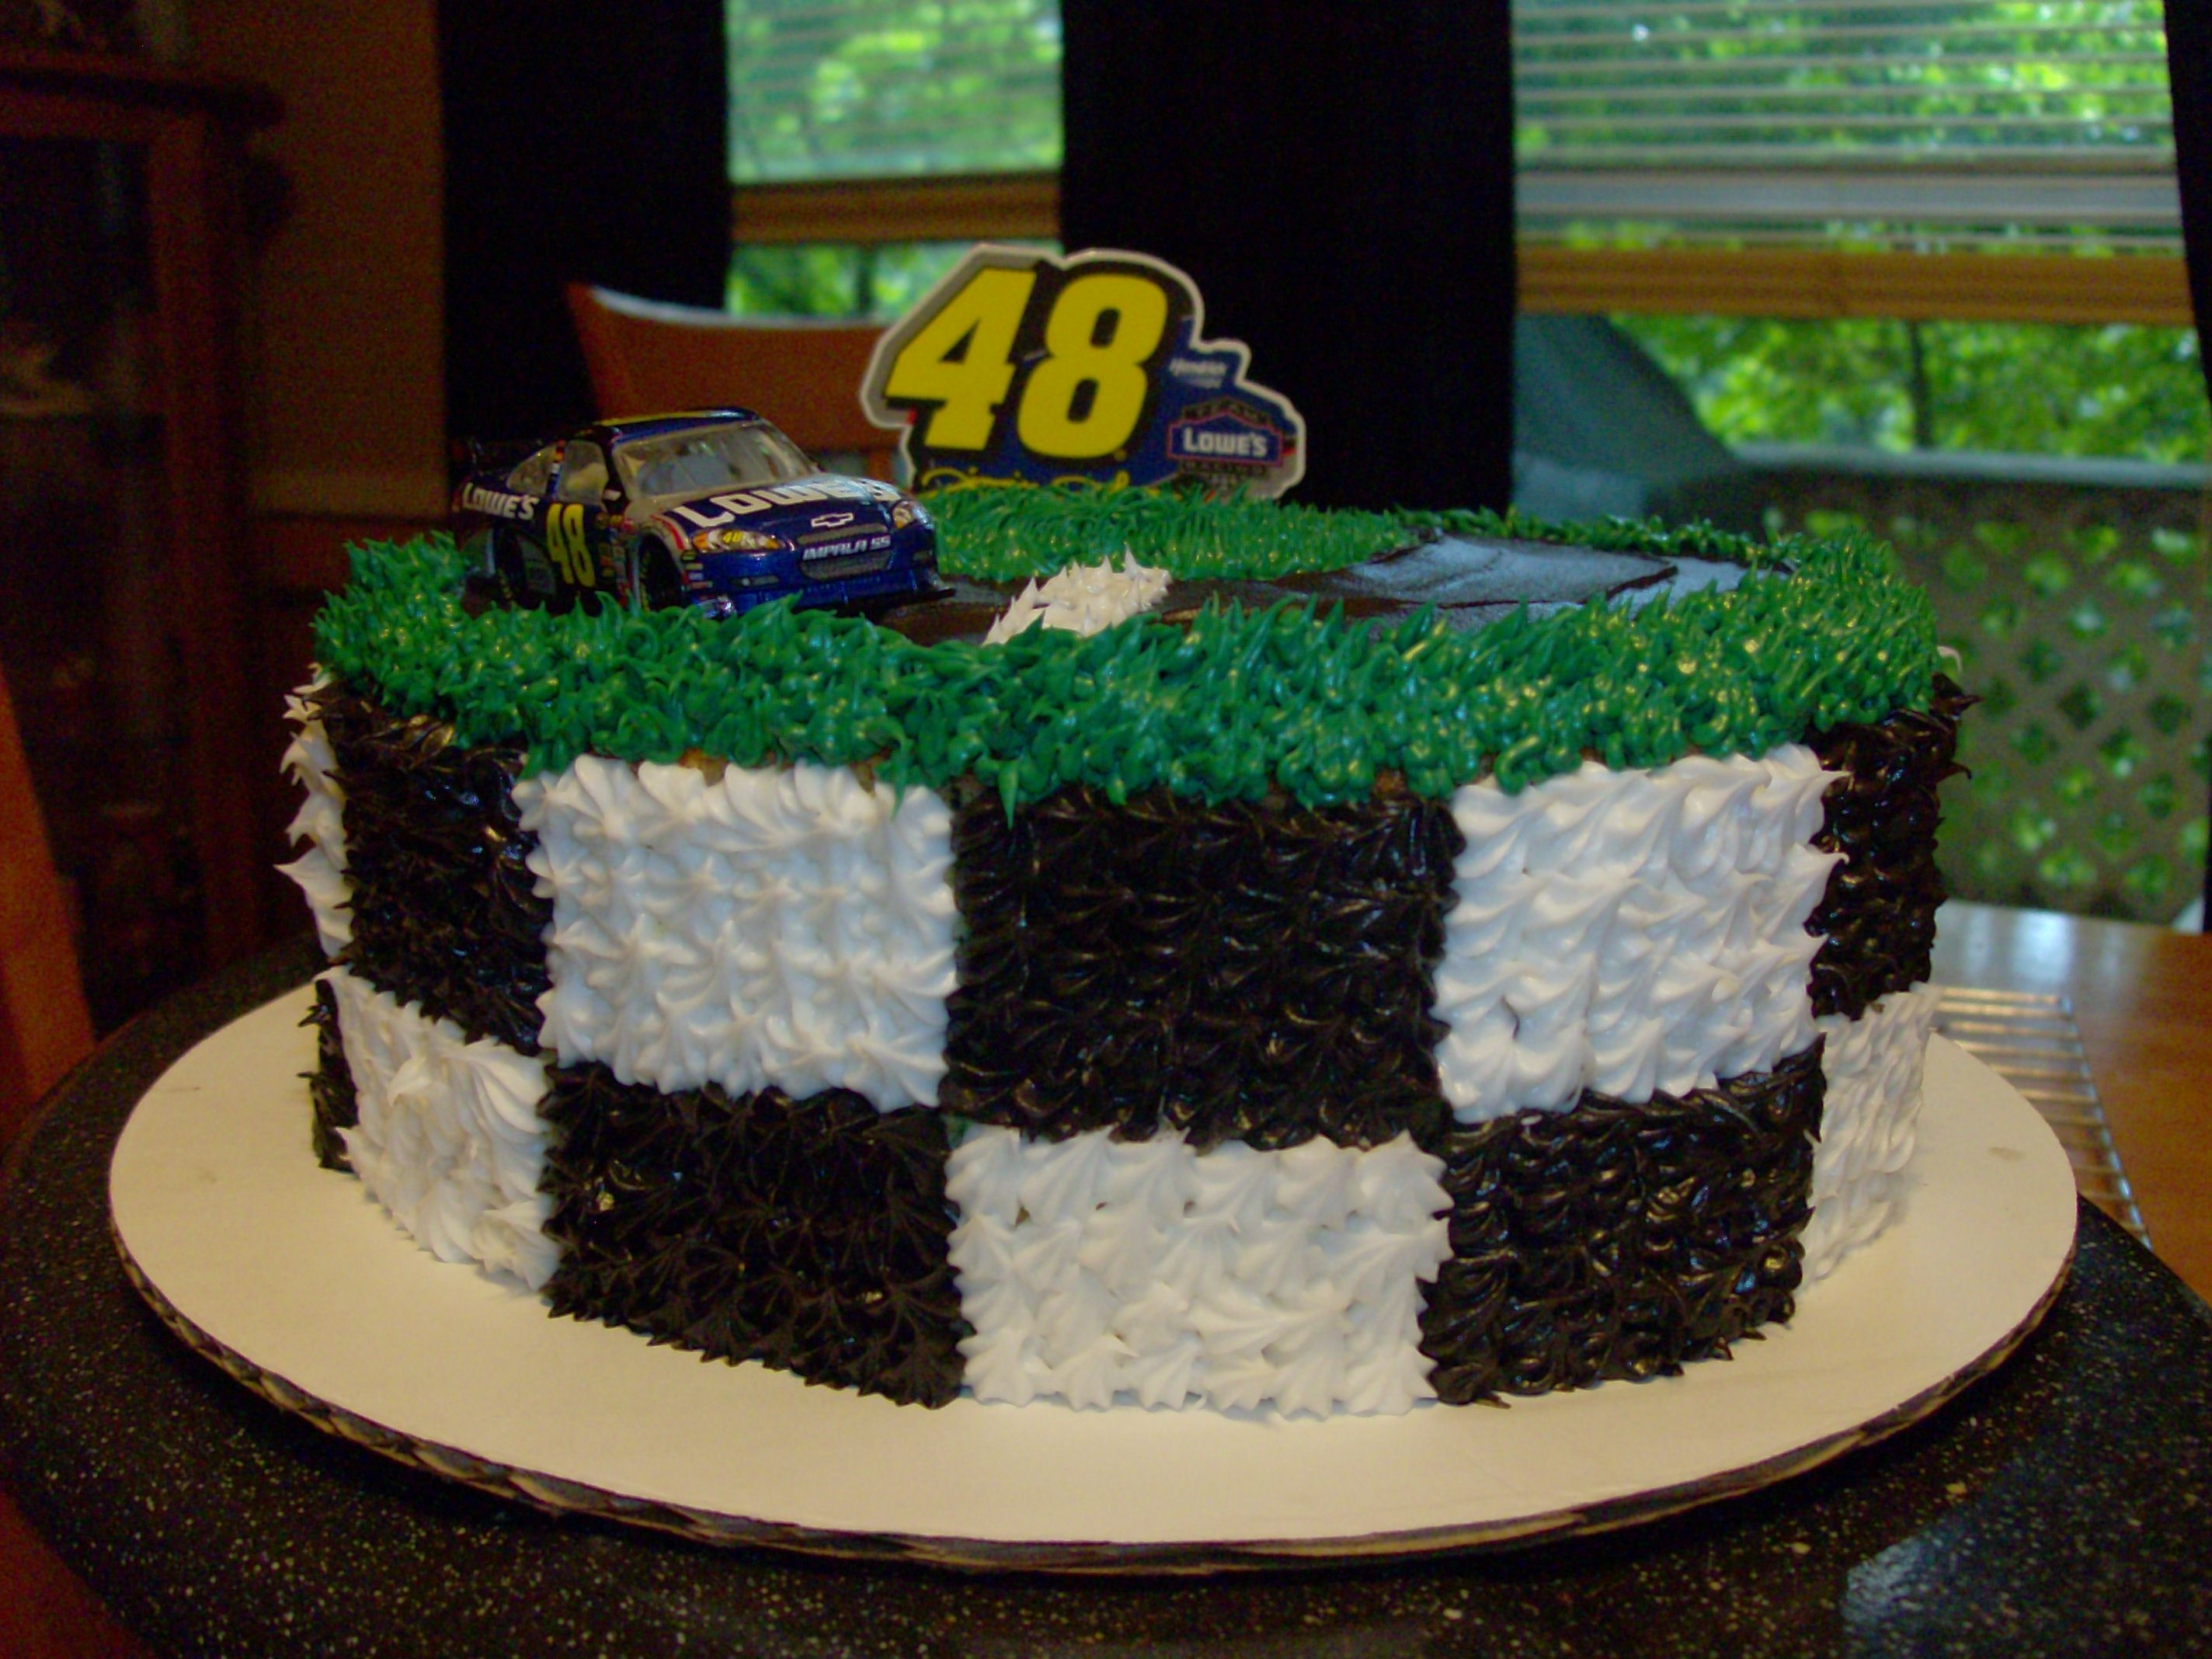 jimmie johnson birthday cake Cake Gallery on Cake Central